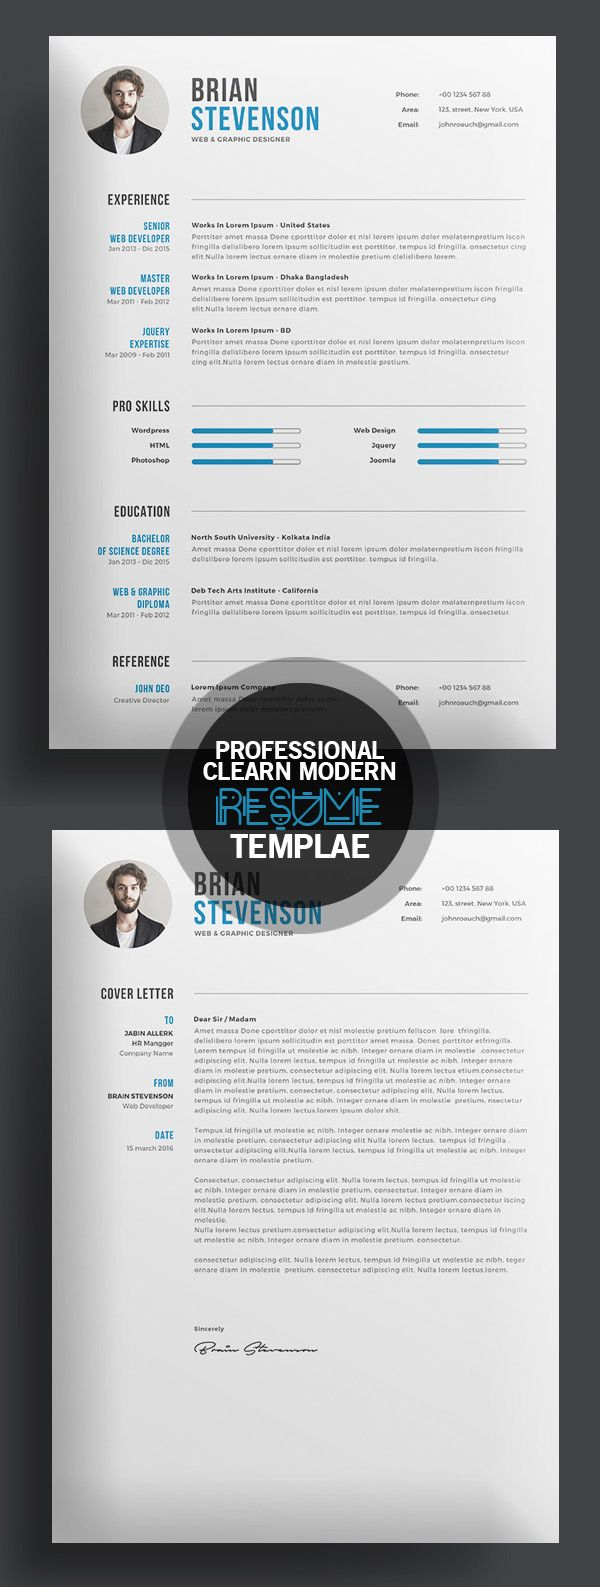 585 best Curriculum Vitae images on Pinterest | Cv template, Resume ...